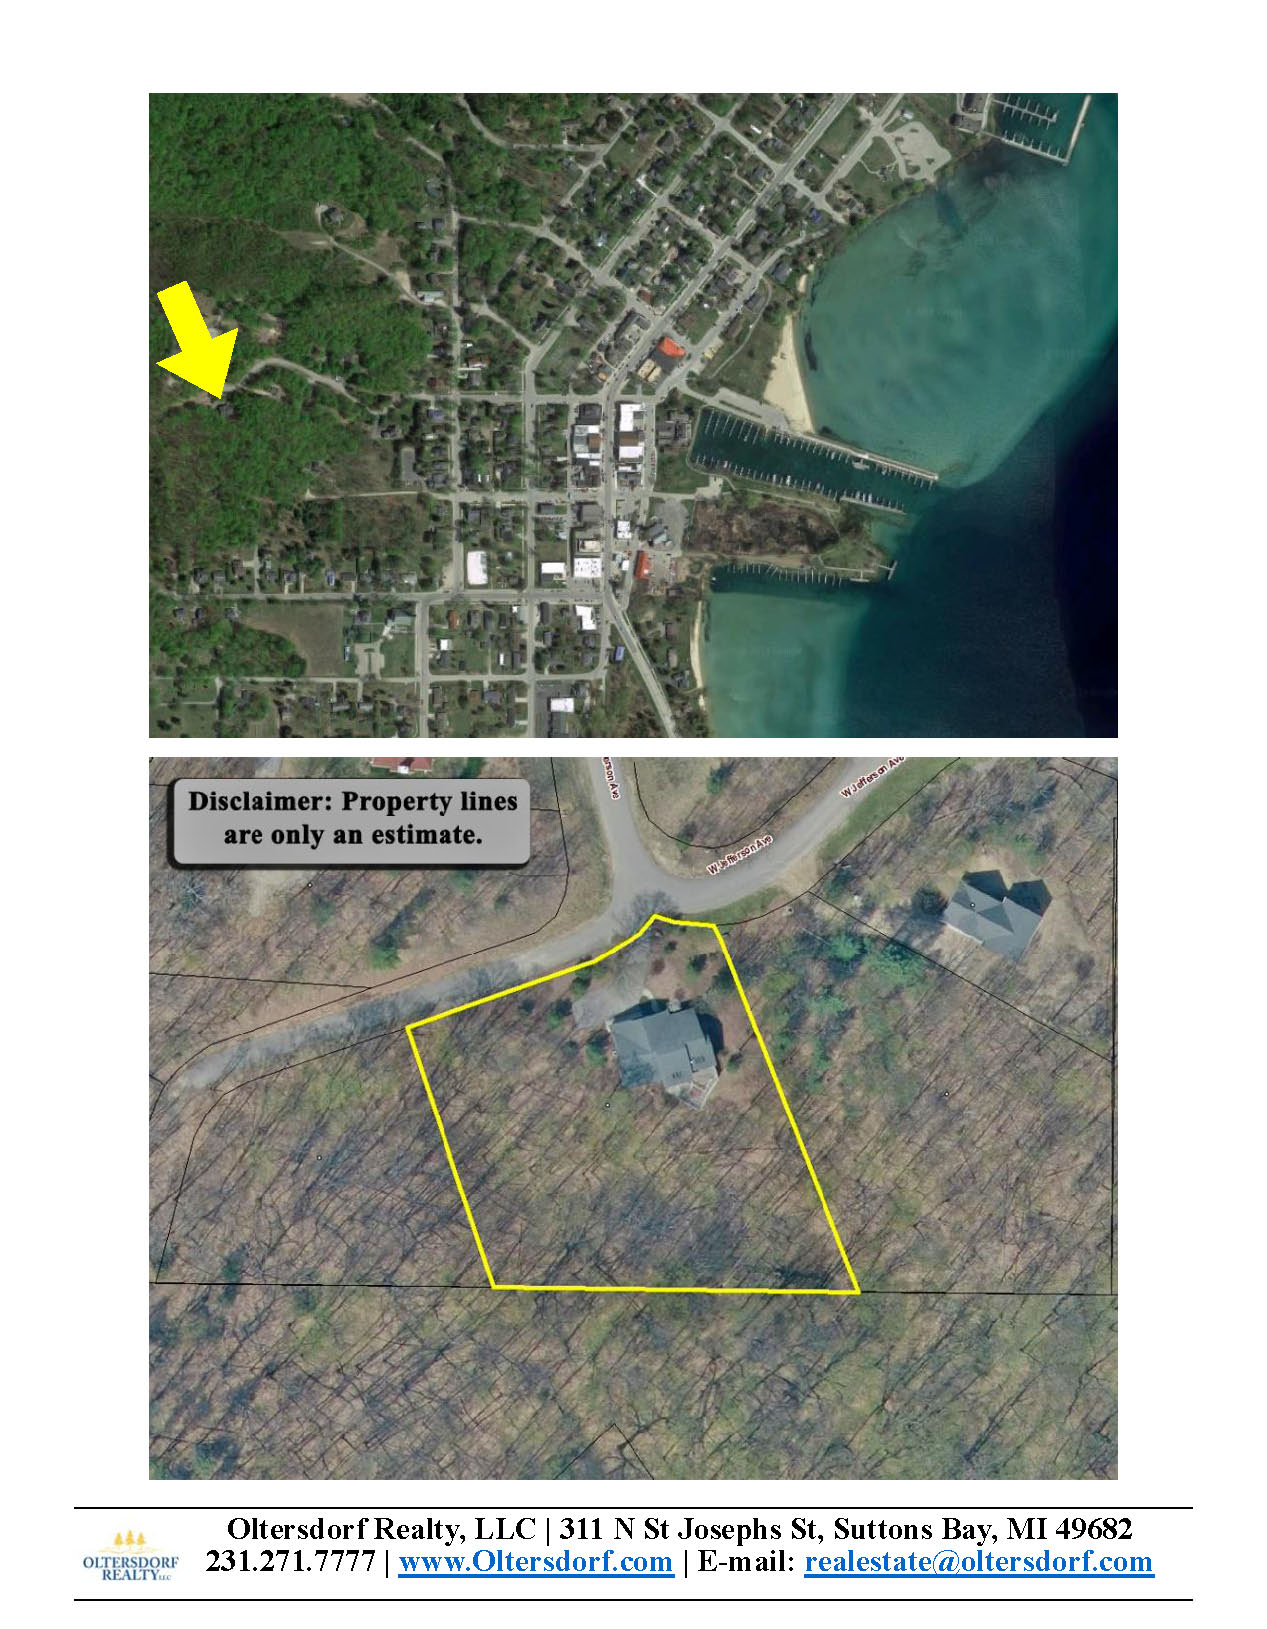 344 W Jefferson Ave Marketing Packet - For Sale by Oltersdorf Realty LLC (10).jpg